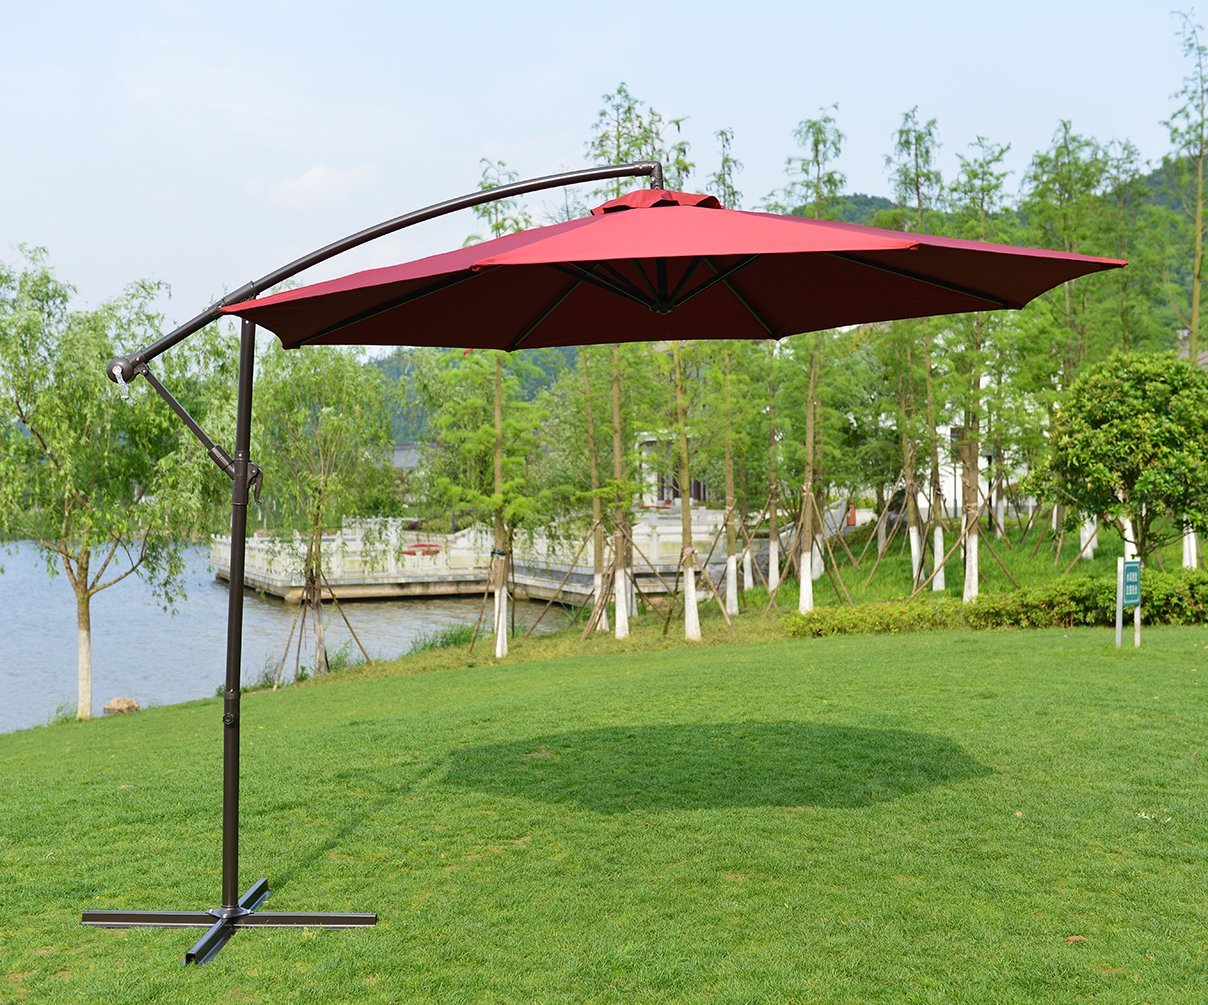 Top 10 best offset patio umbrellas in 2017 reviews for Best outdoor umbrellas reviews